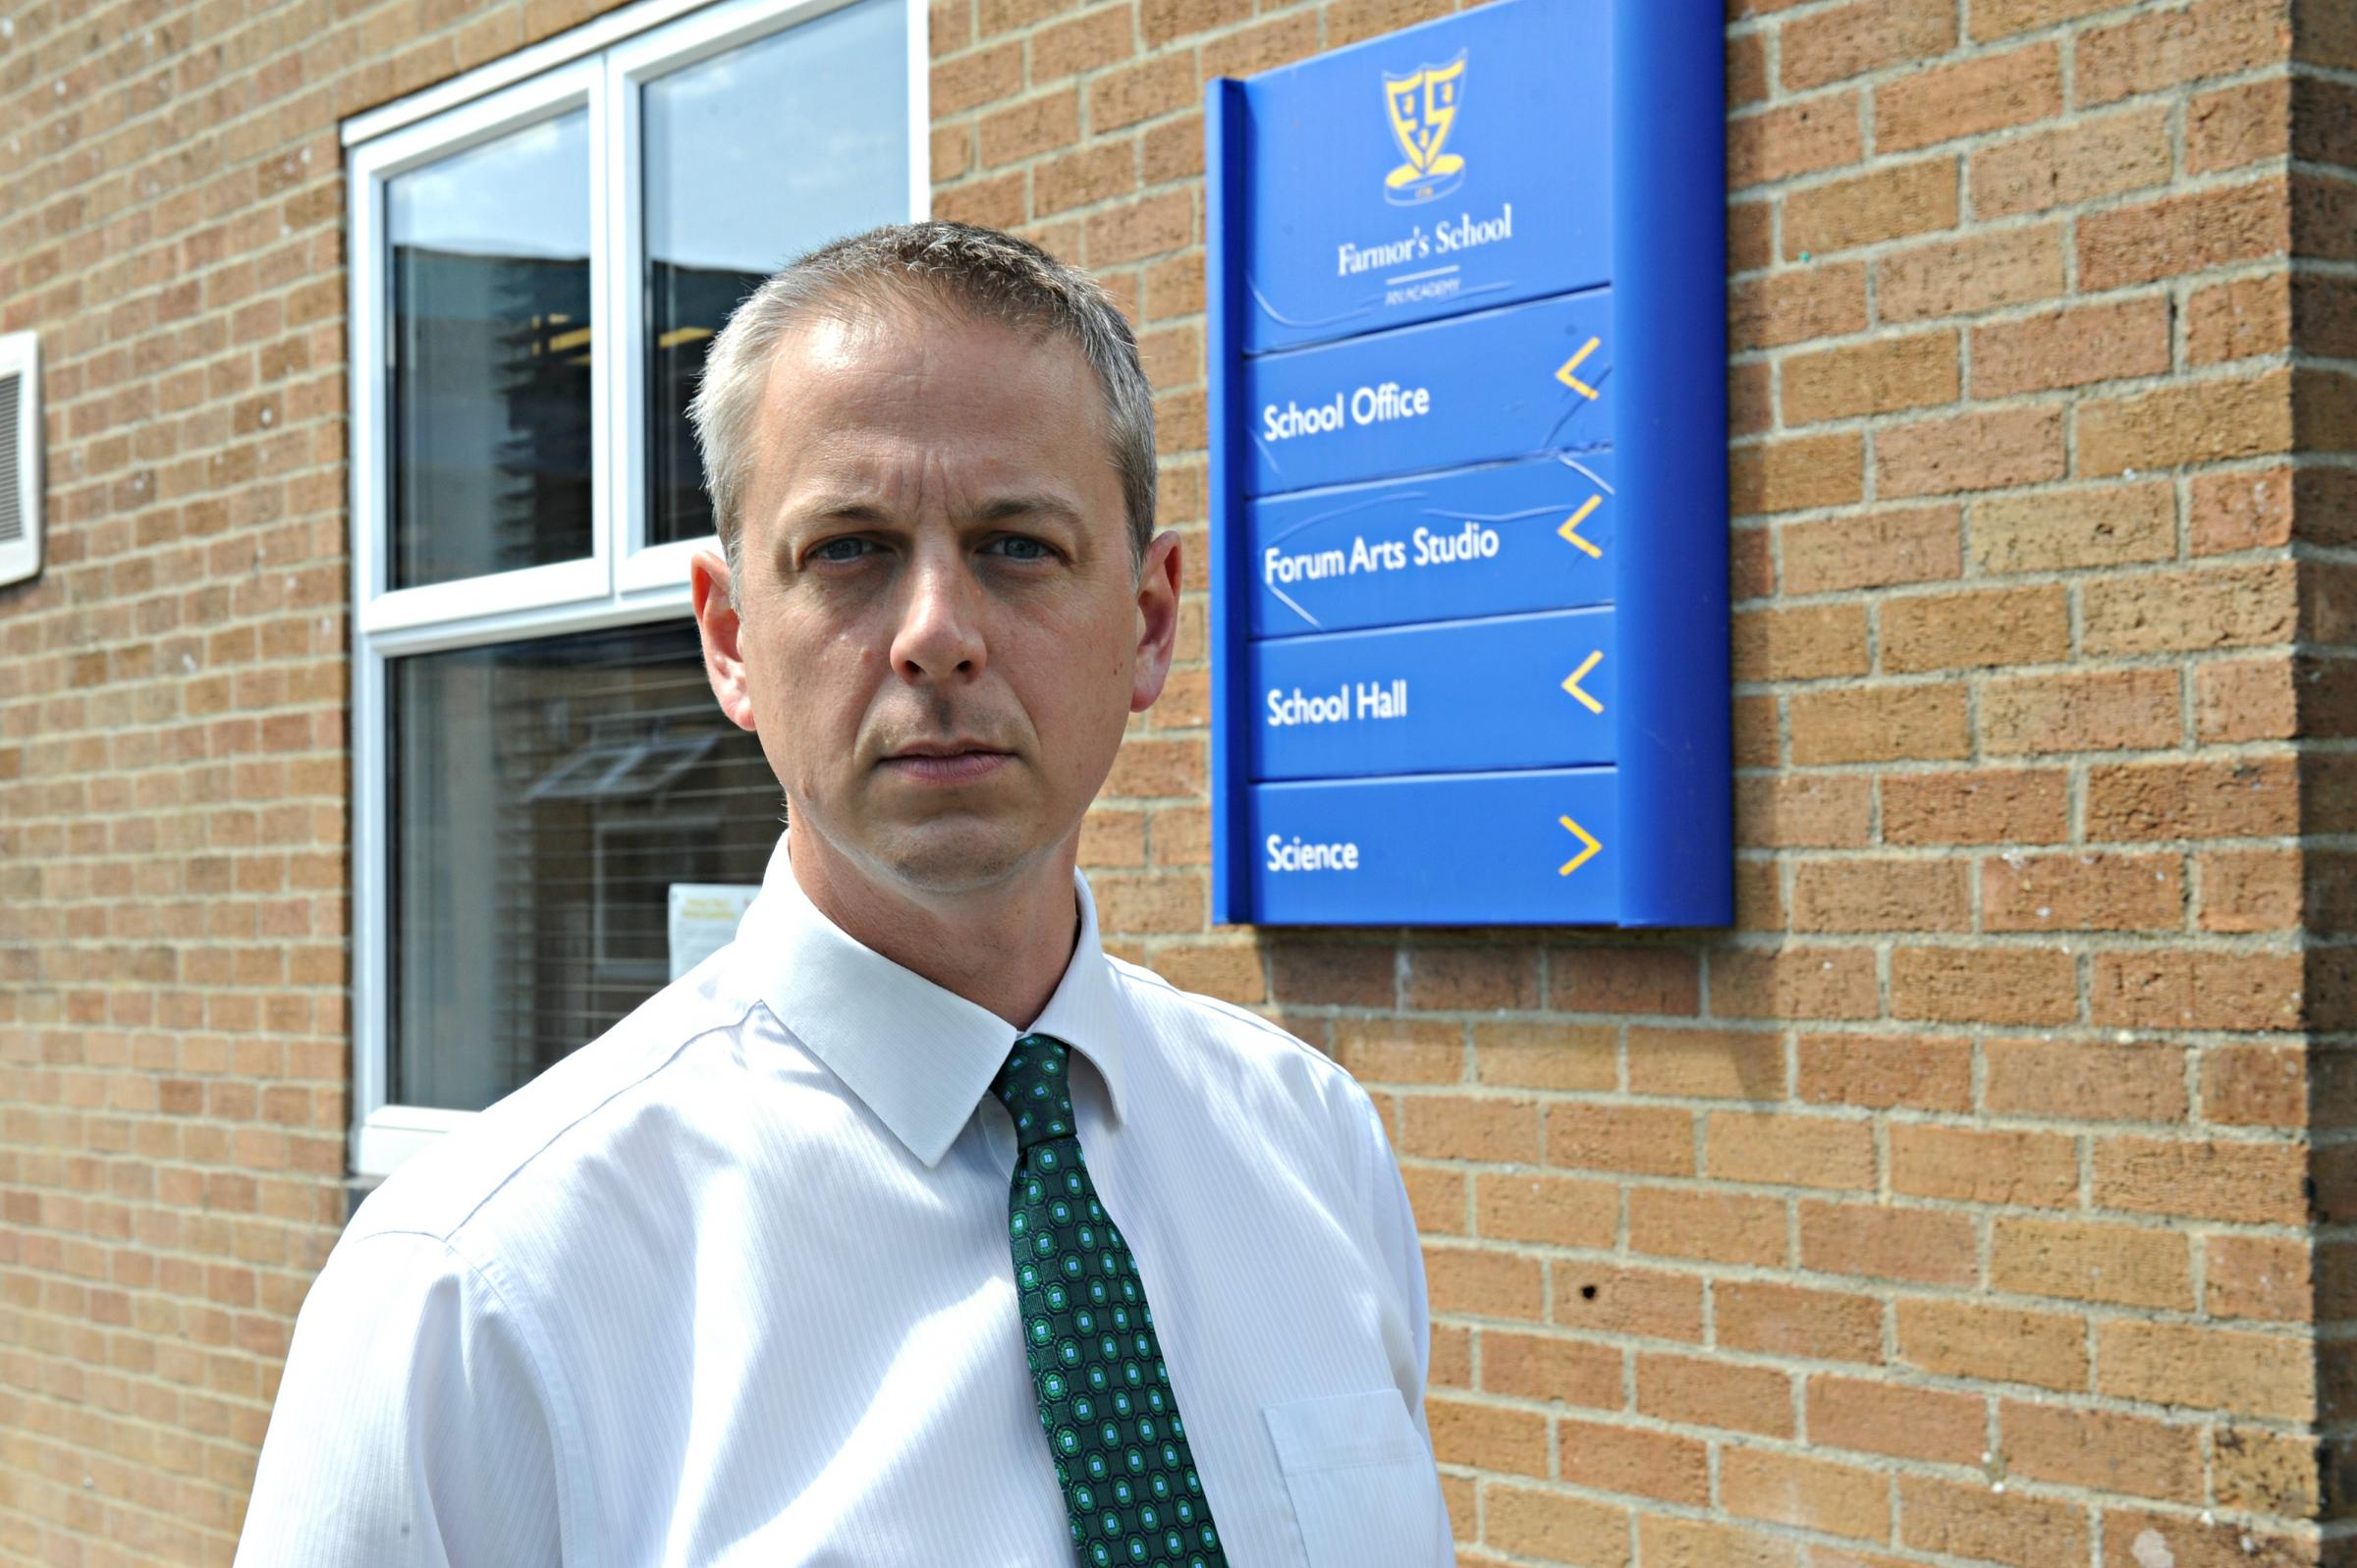 Matthew Evans, headteacher at Farmor's School in Fairford